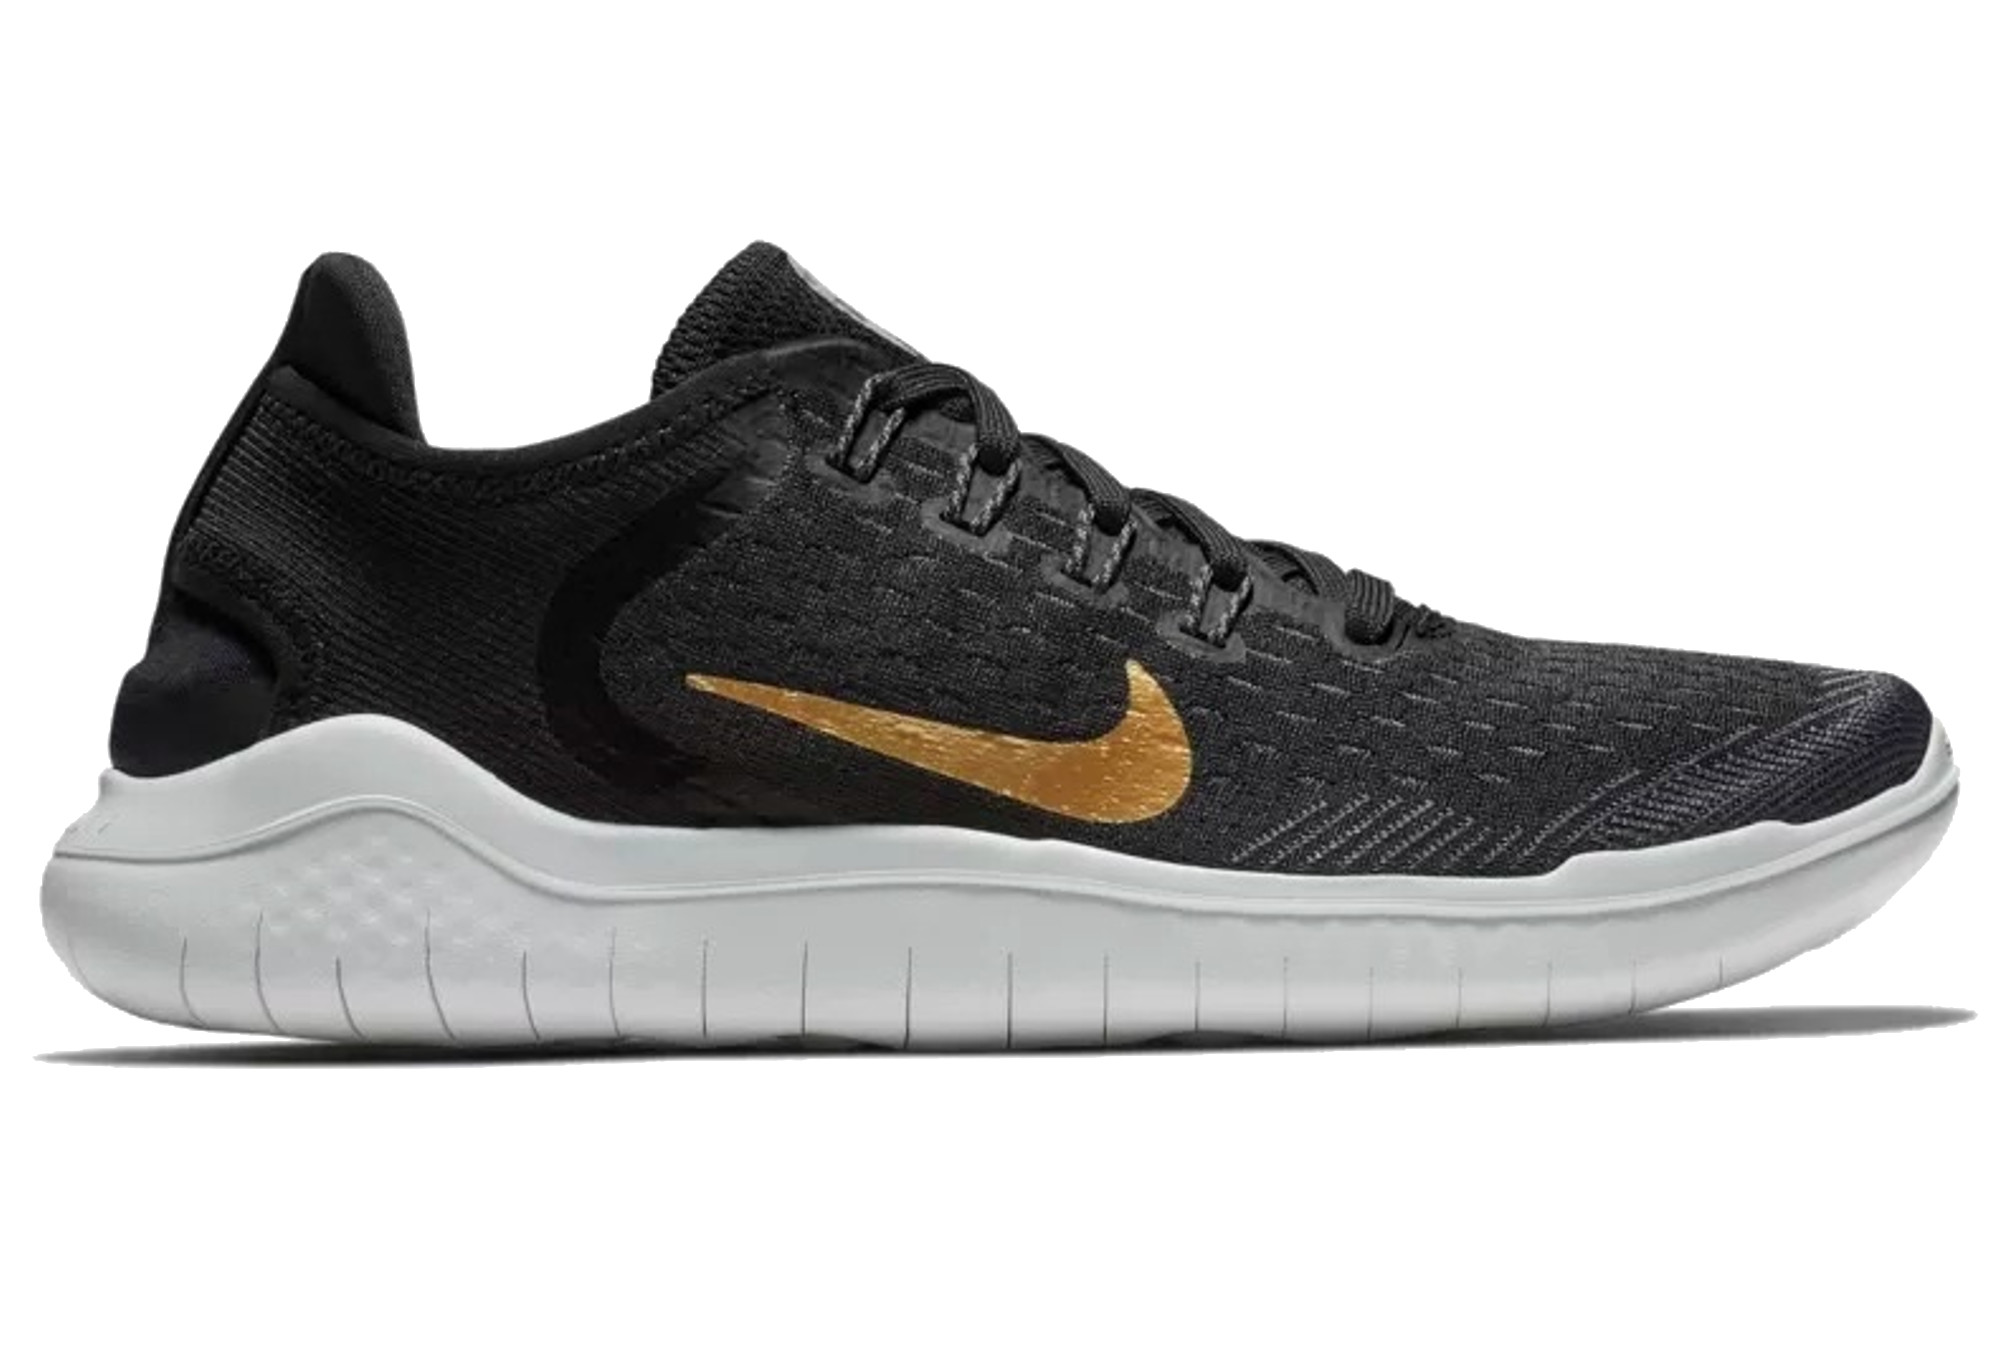 finest selection 75ac8 2a801 Nike Free RN 2018 Women s Shoes Black Gold   Alltricks.com